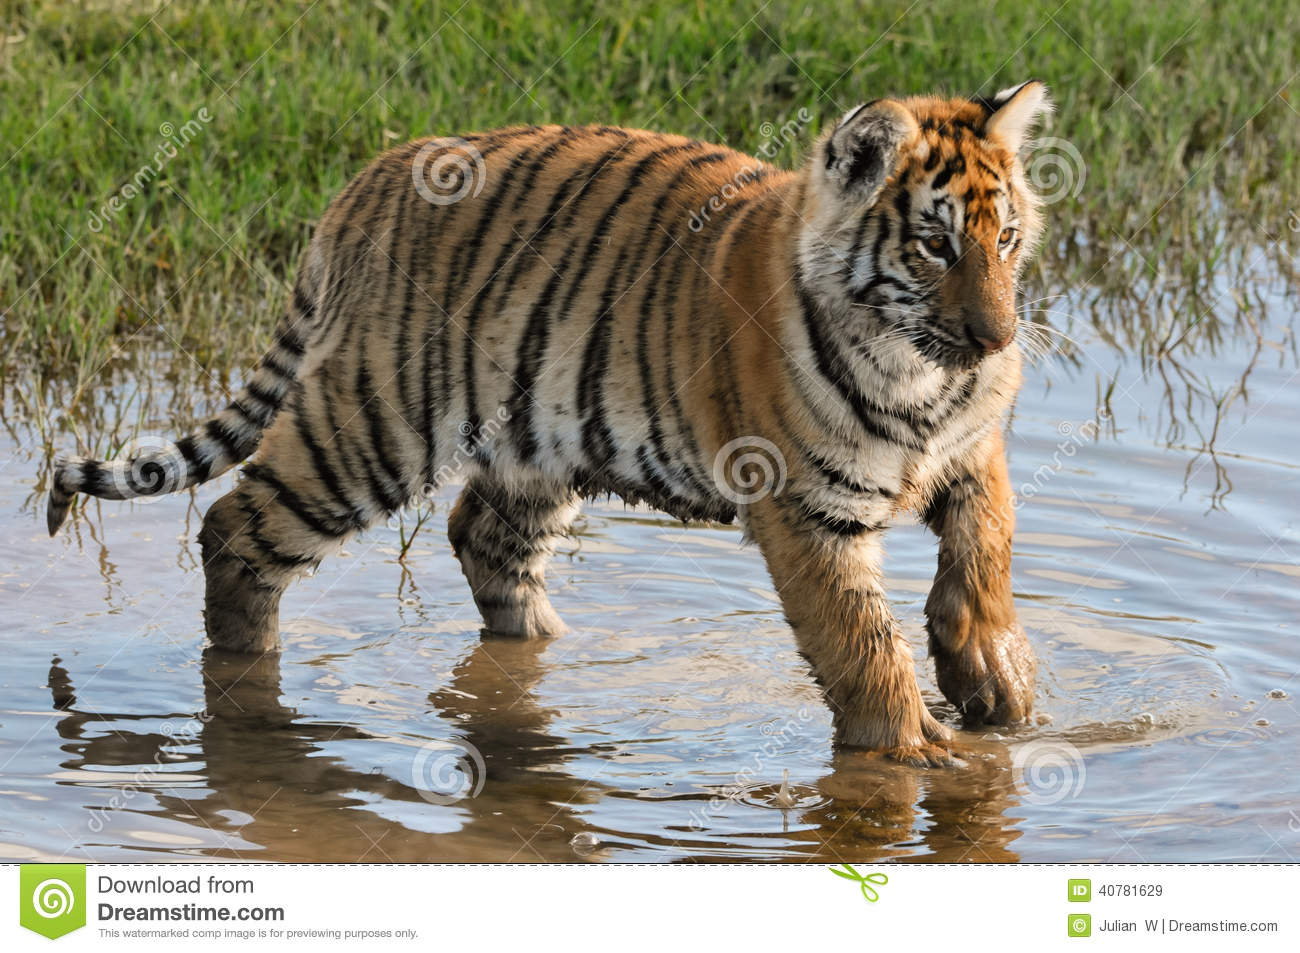 Tiger having fun in the water